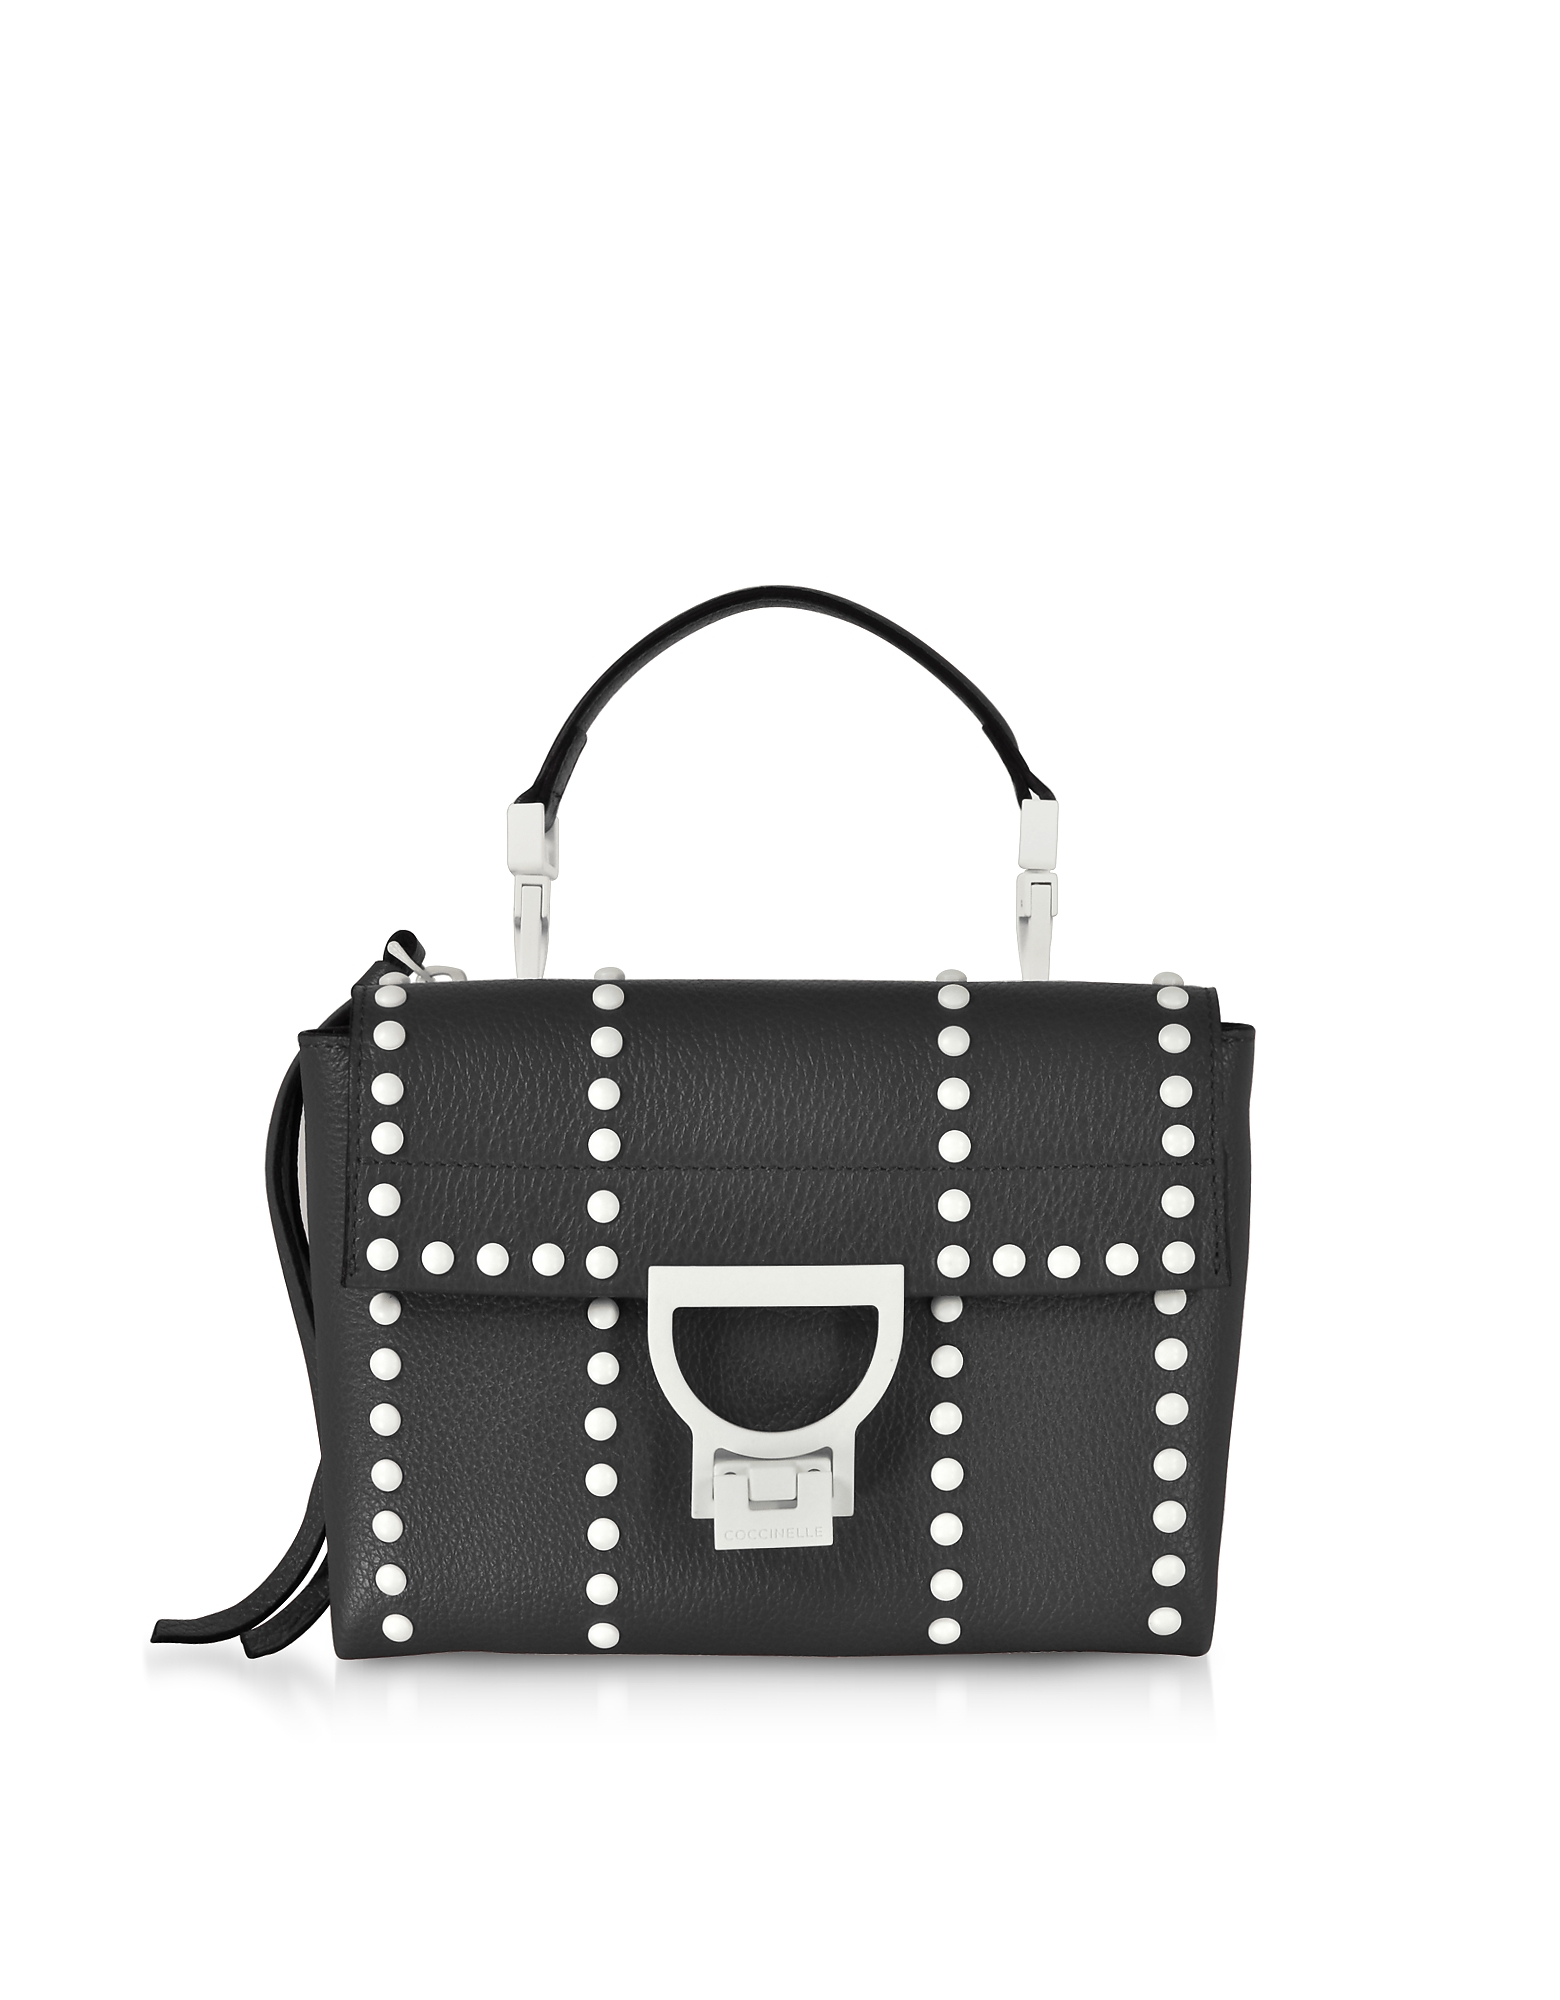 Coccinelle Handbags, Arlettis Special Studs Leather Shoulder Bag